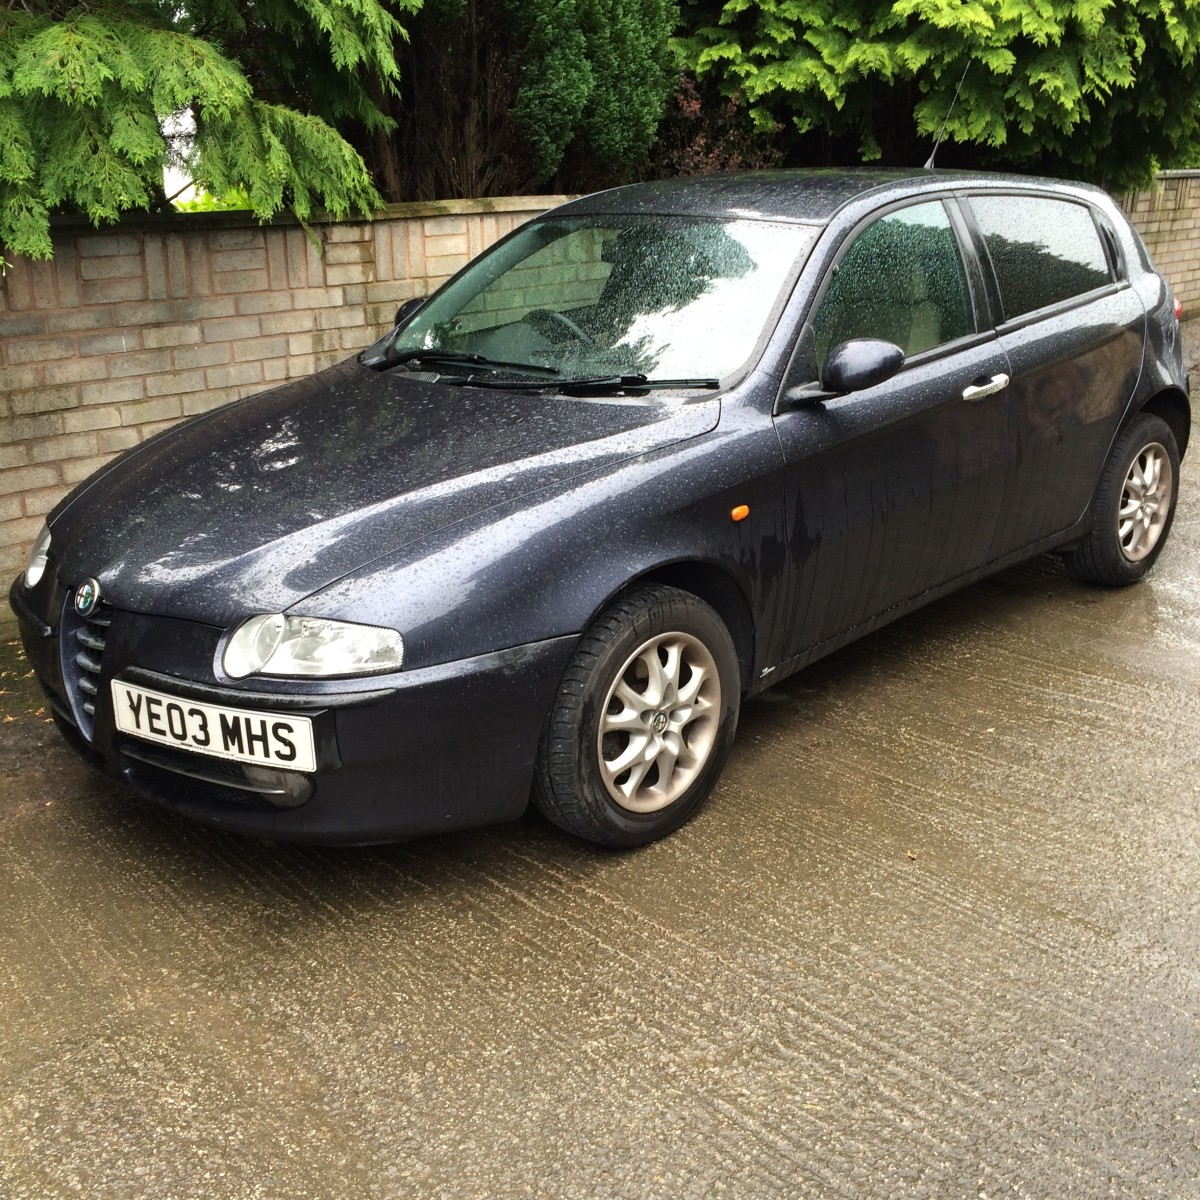 Alfa Romeo 147/GT Rear Brake Discs and Pads Change